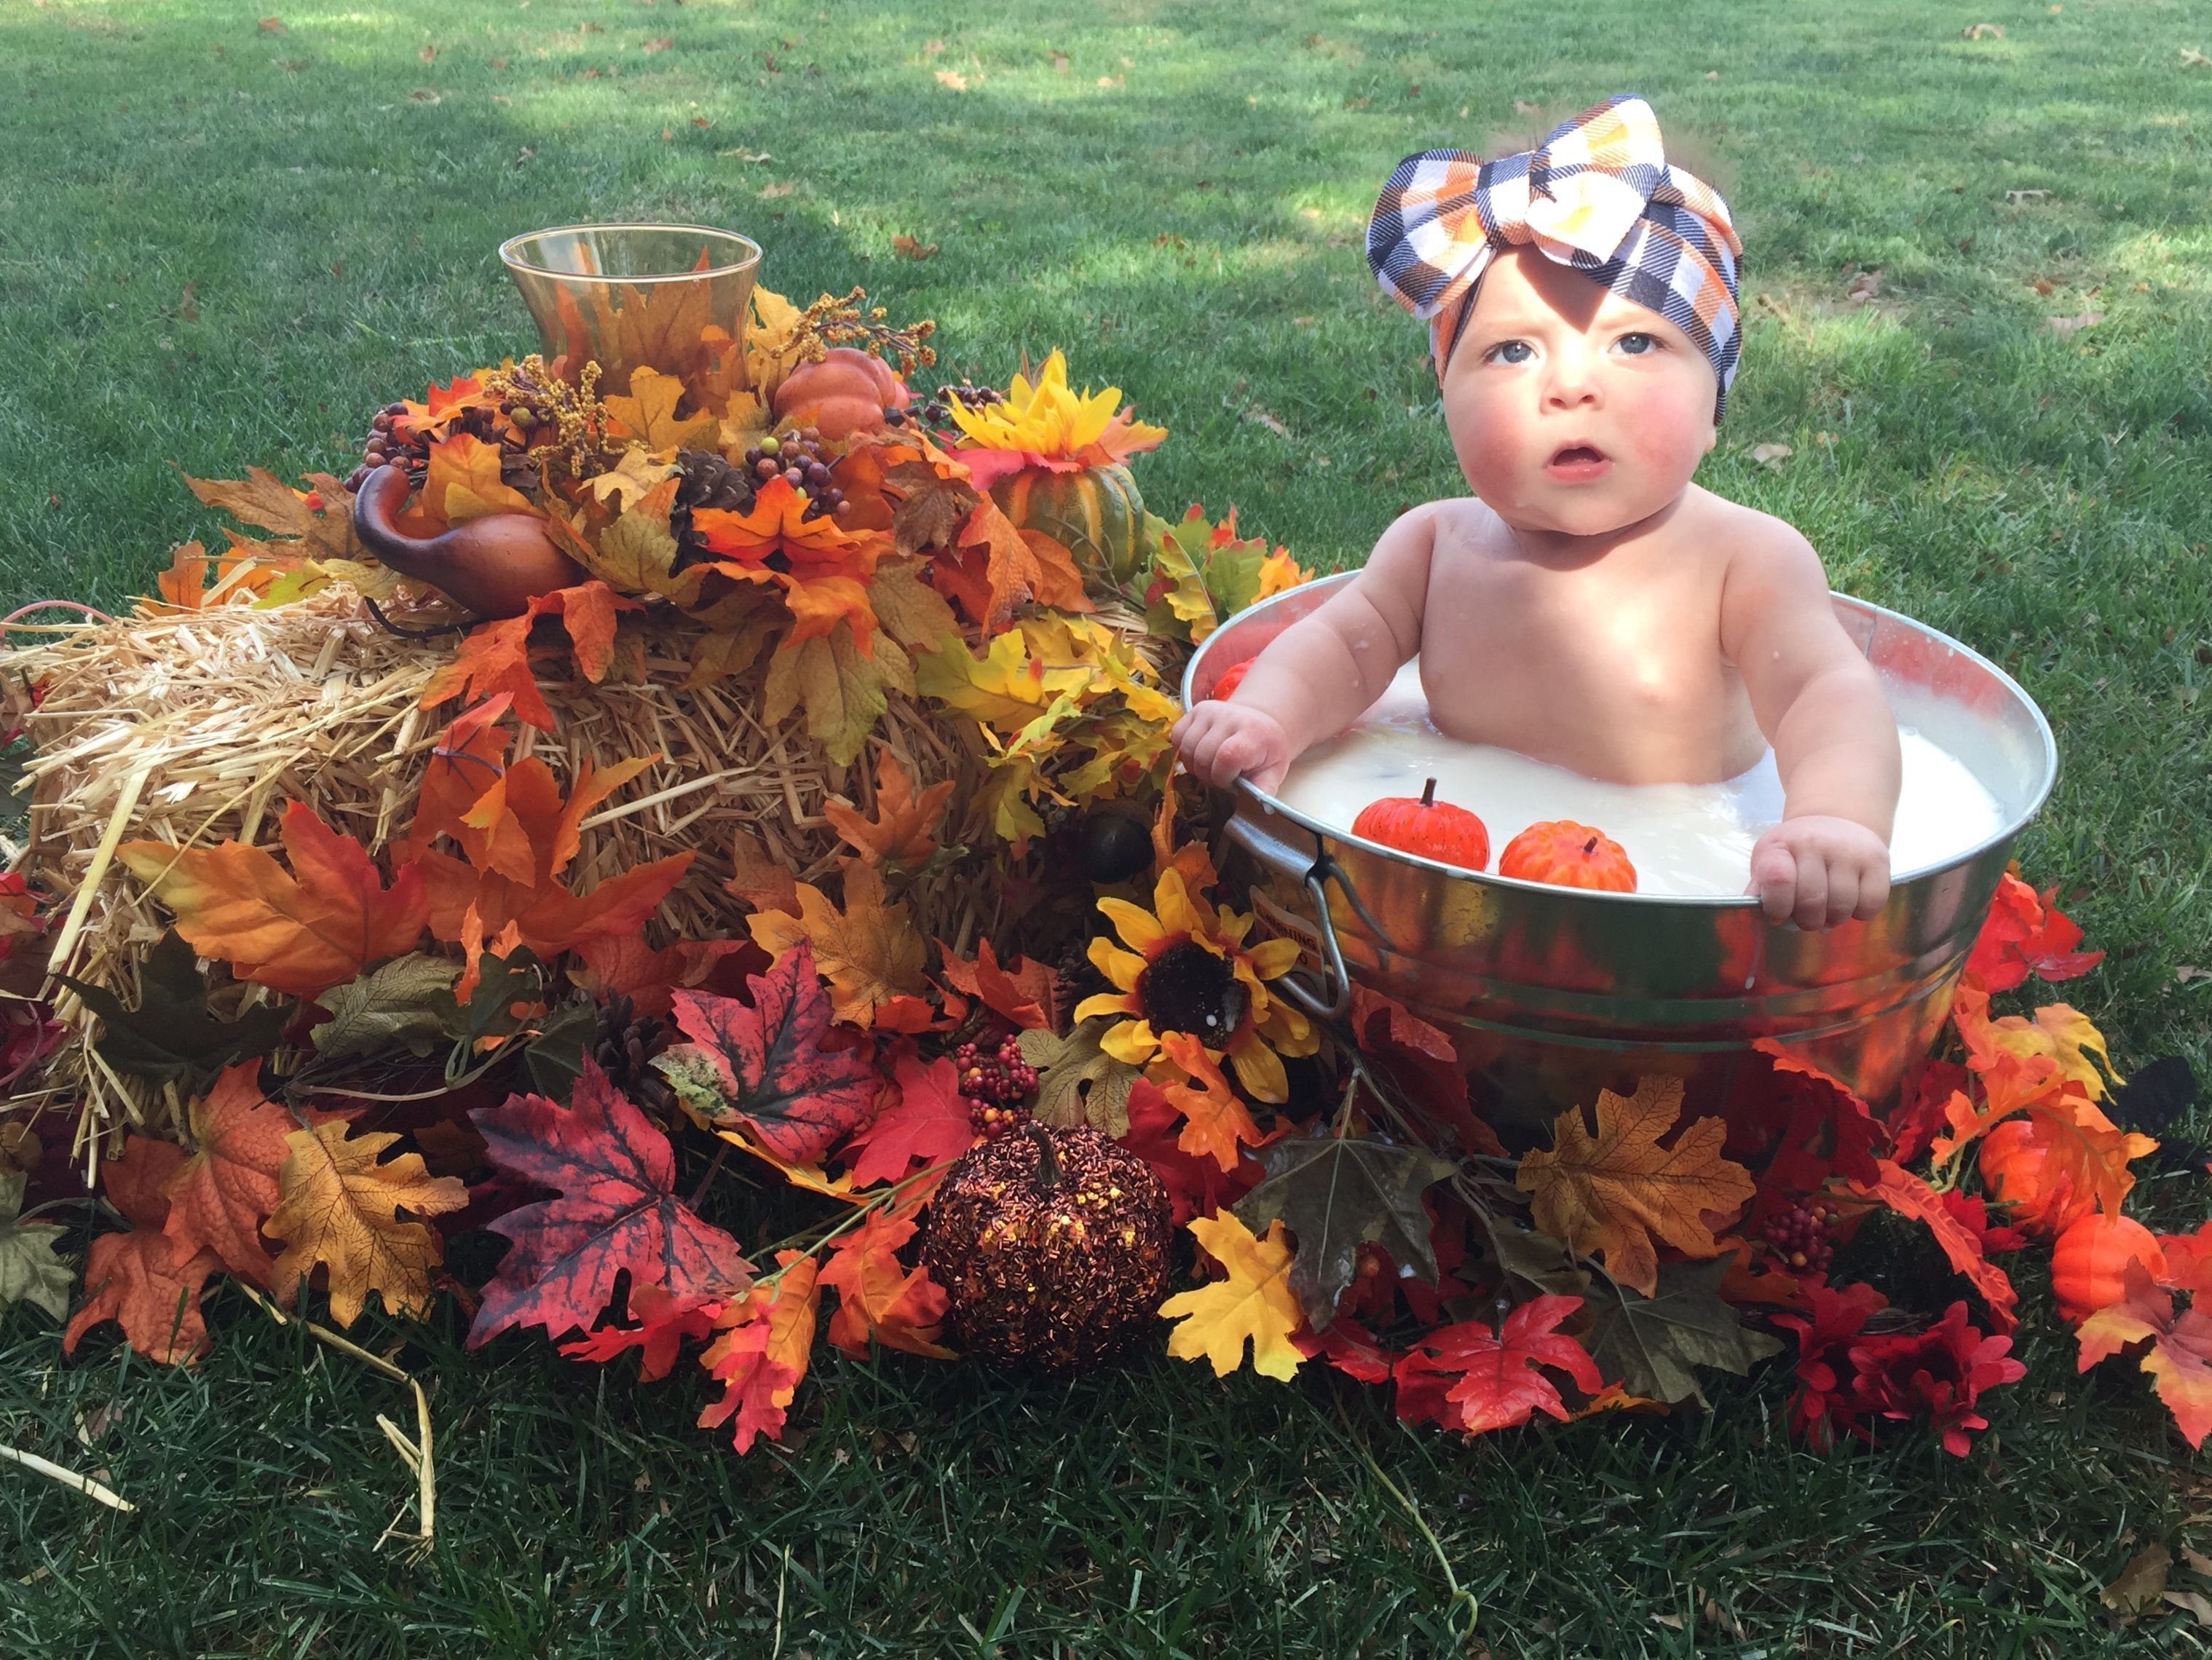 Autumn Milk Bath Photo #fallmilkbathbaby #milkbathphotography #milkbath  #photoideas #pumpkin #baby #babyphotography #autumn #fall #fallmilkbath Autumn Milk Bath Photo #fallmilkbathbaby #milkbathphotography #milkbath  #photoideas #pumpkin #baby #babyphotography #autumn #fall #fallmilkbath